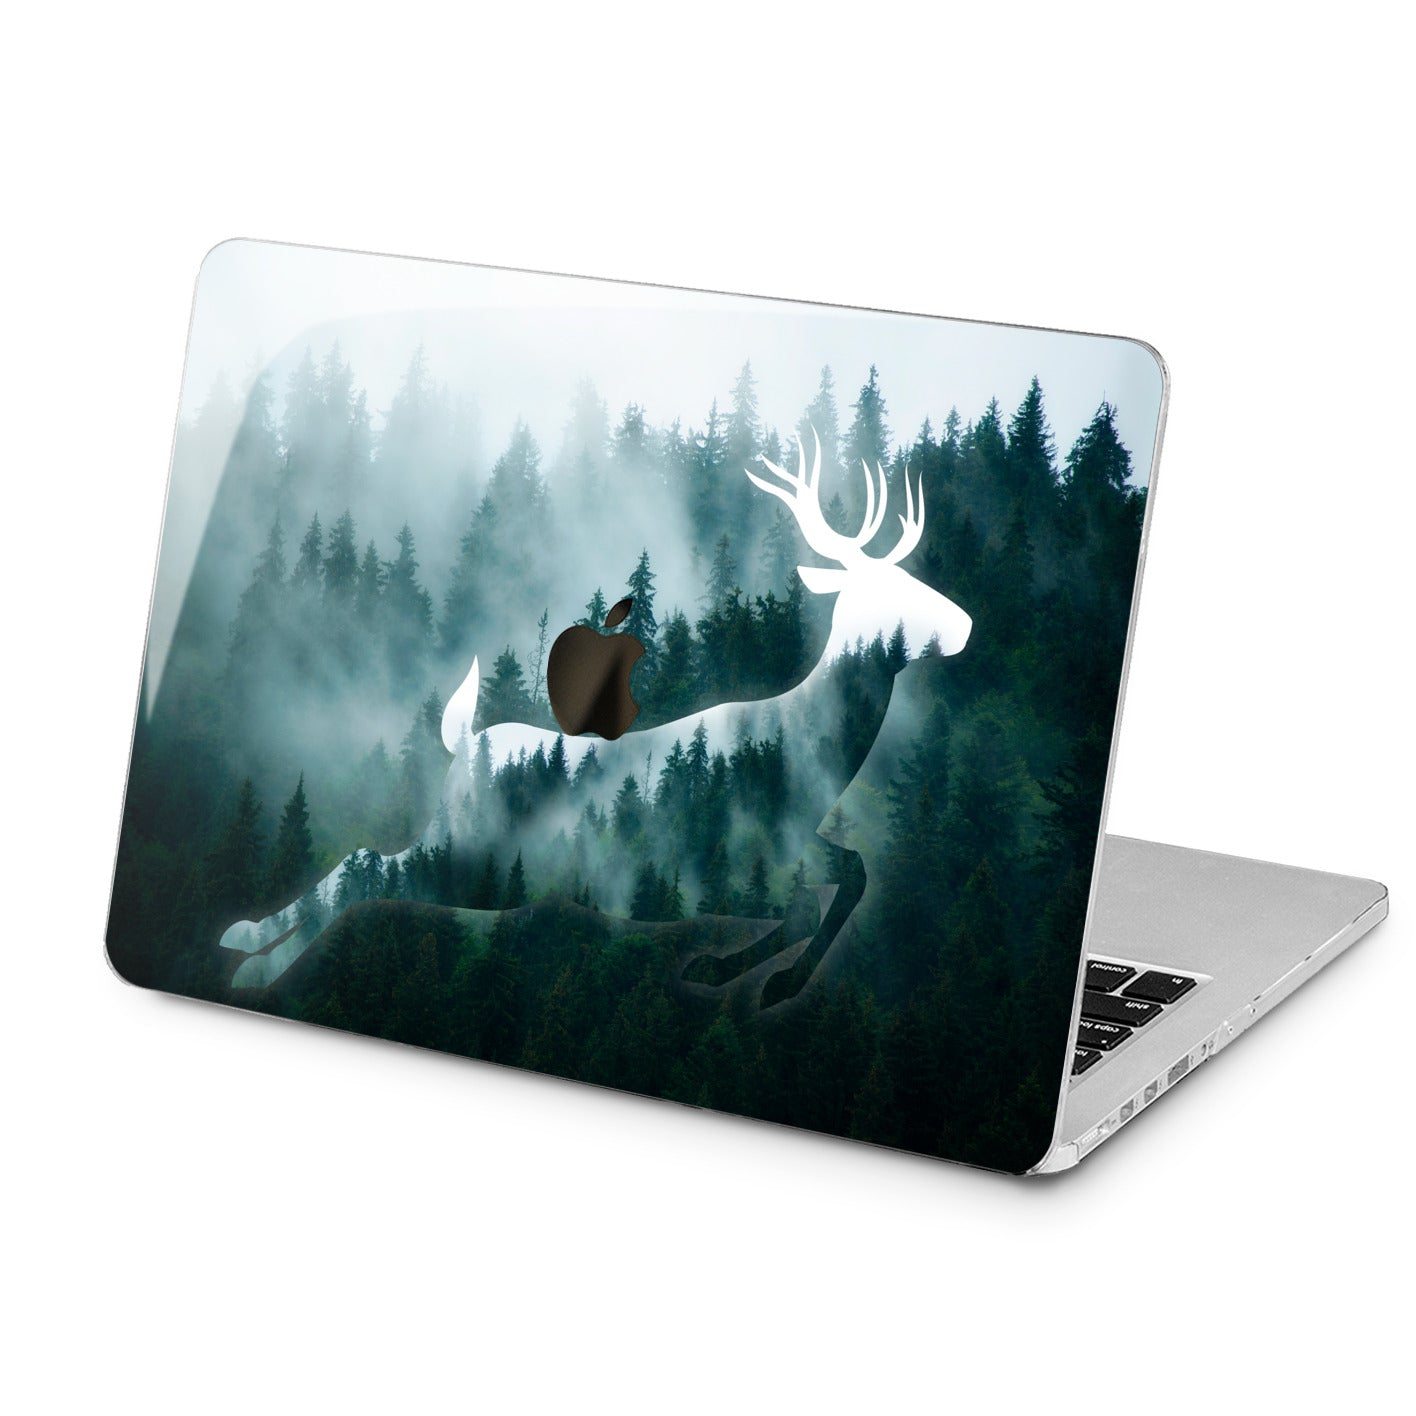 Lex Altern Lex Altern Foggy Deer Case for your Laptop Apple Macbook.